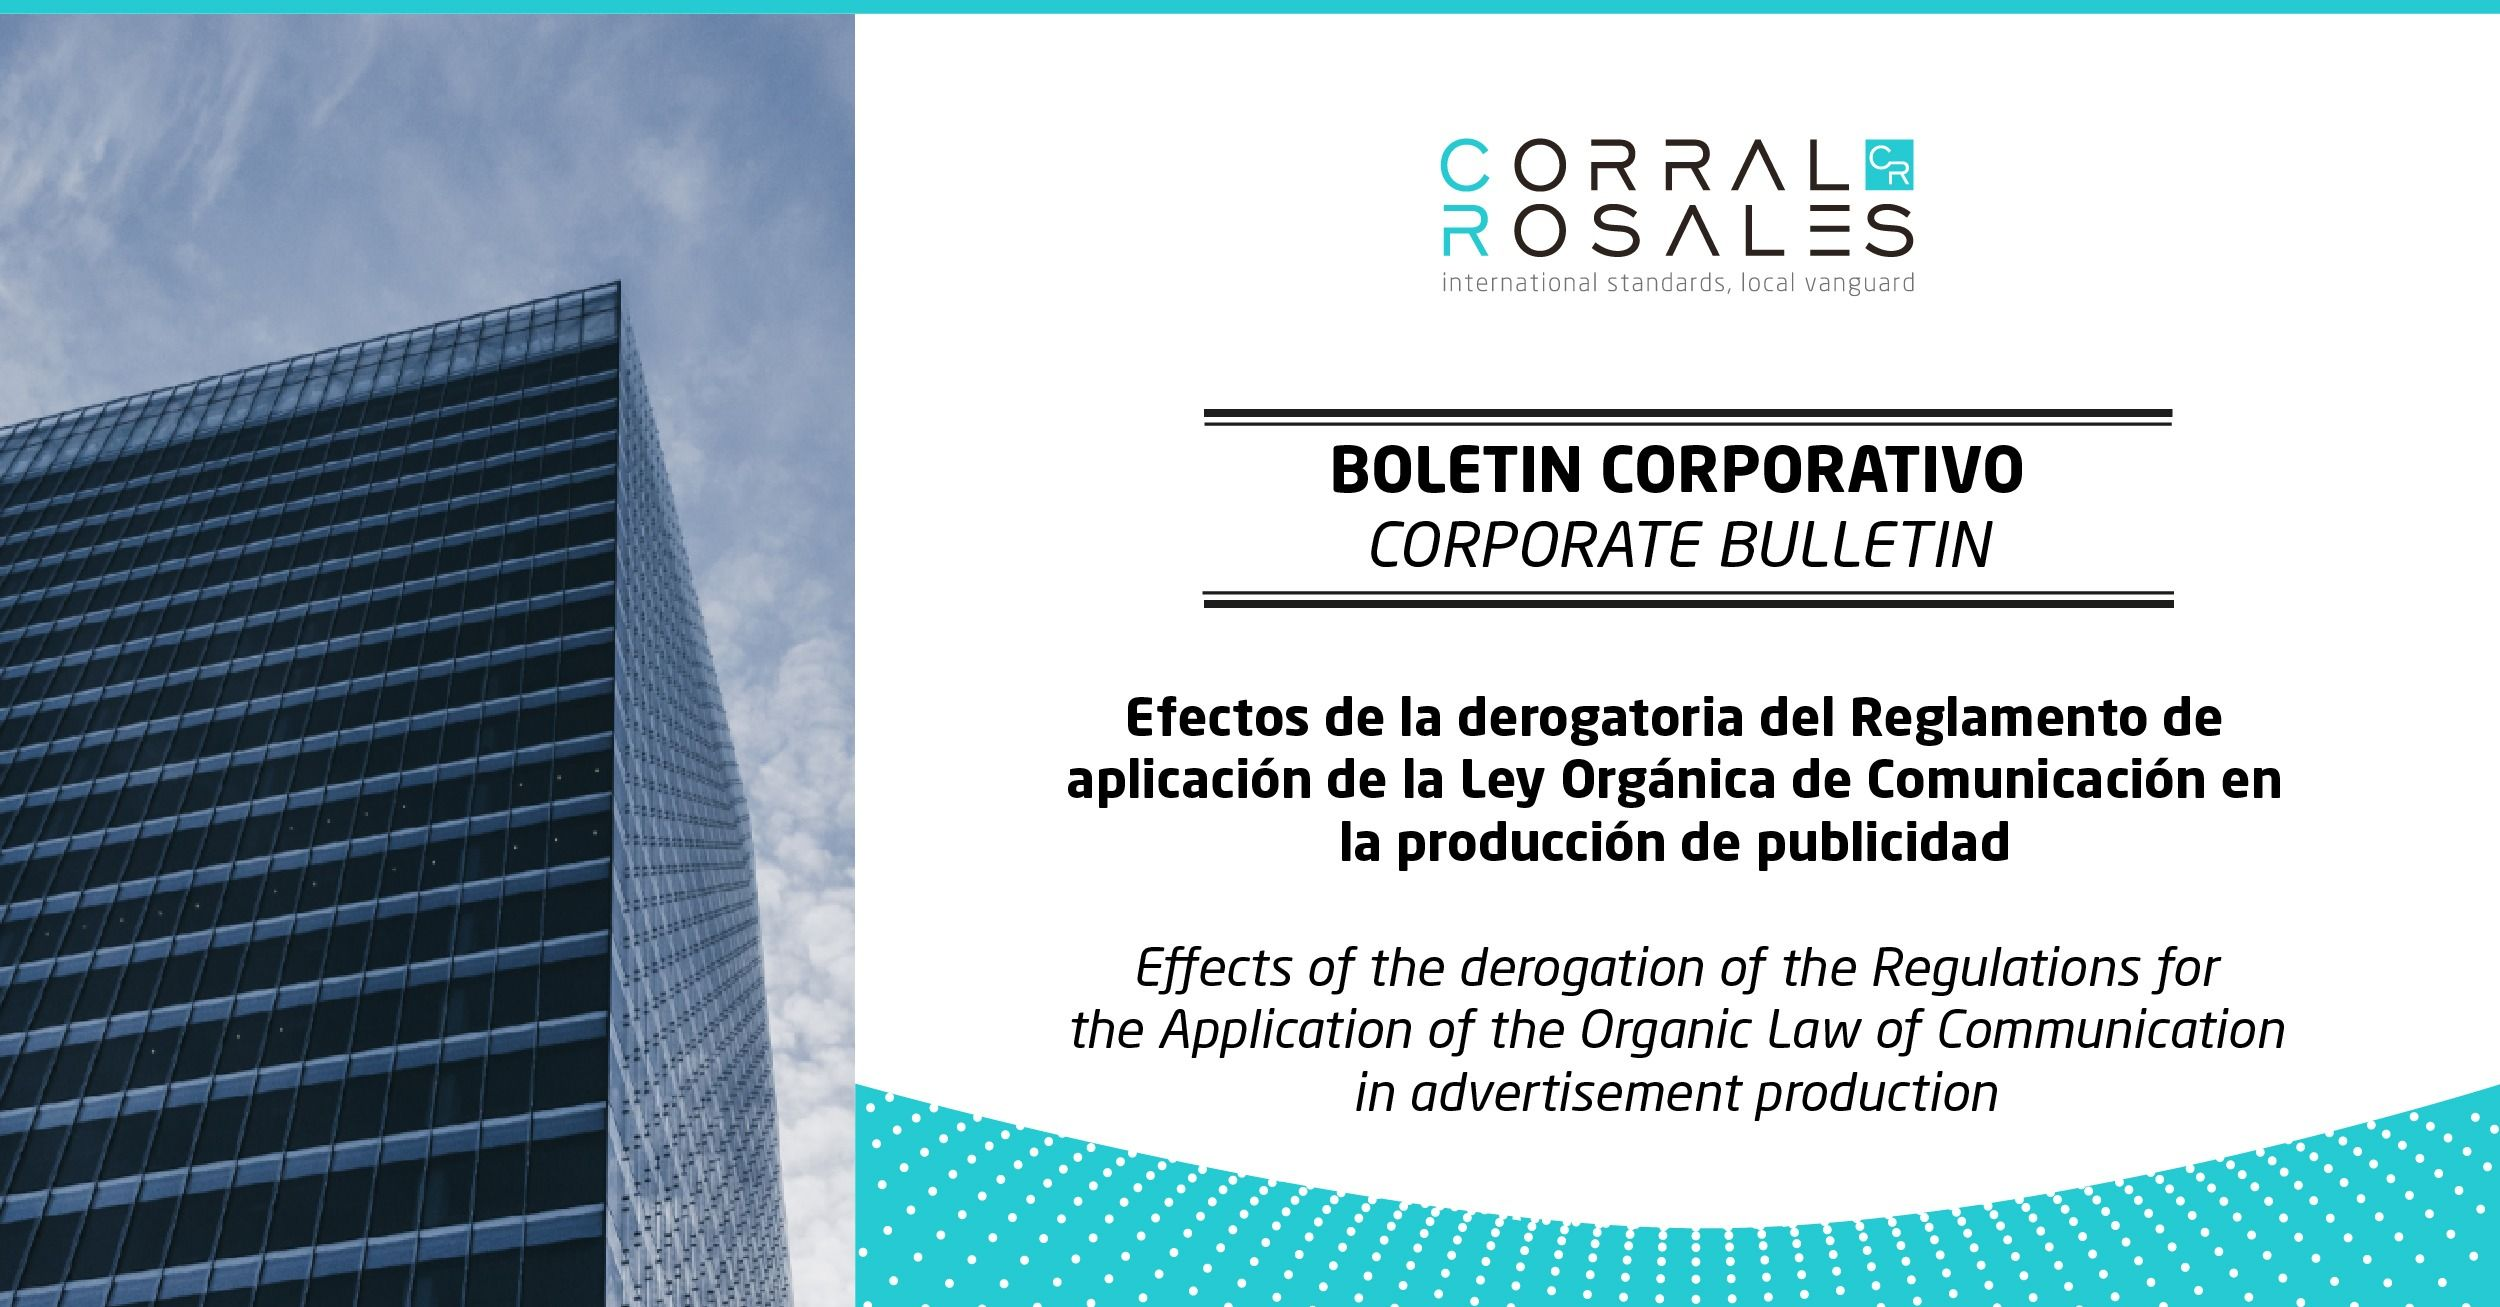 Effects of the derogation of the Regulations for the Application of the Organic Law of Communication in advertisement production - Lawyers Ecuador - CorralRosales